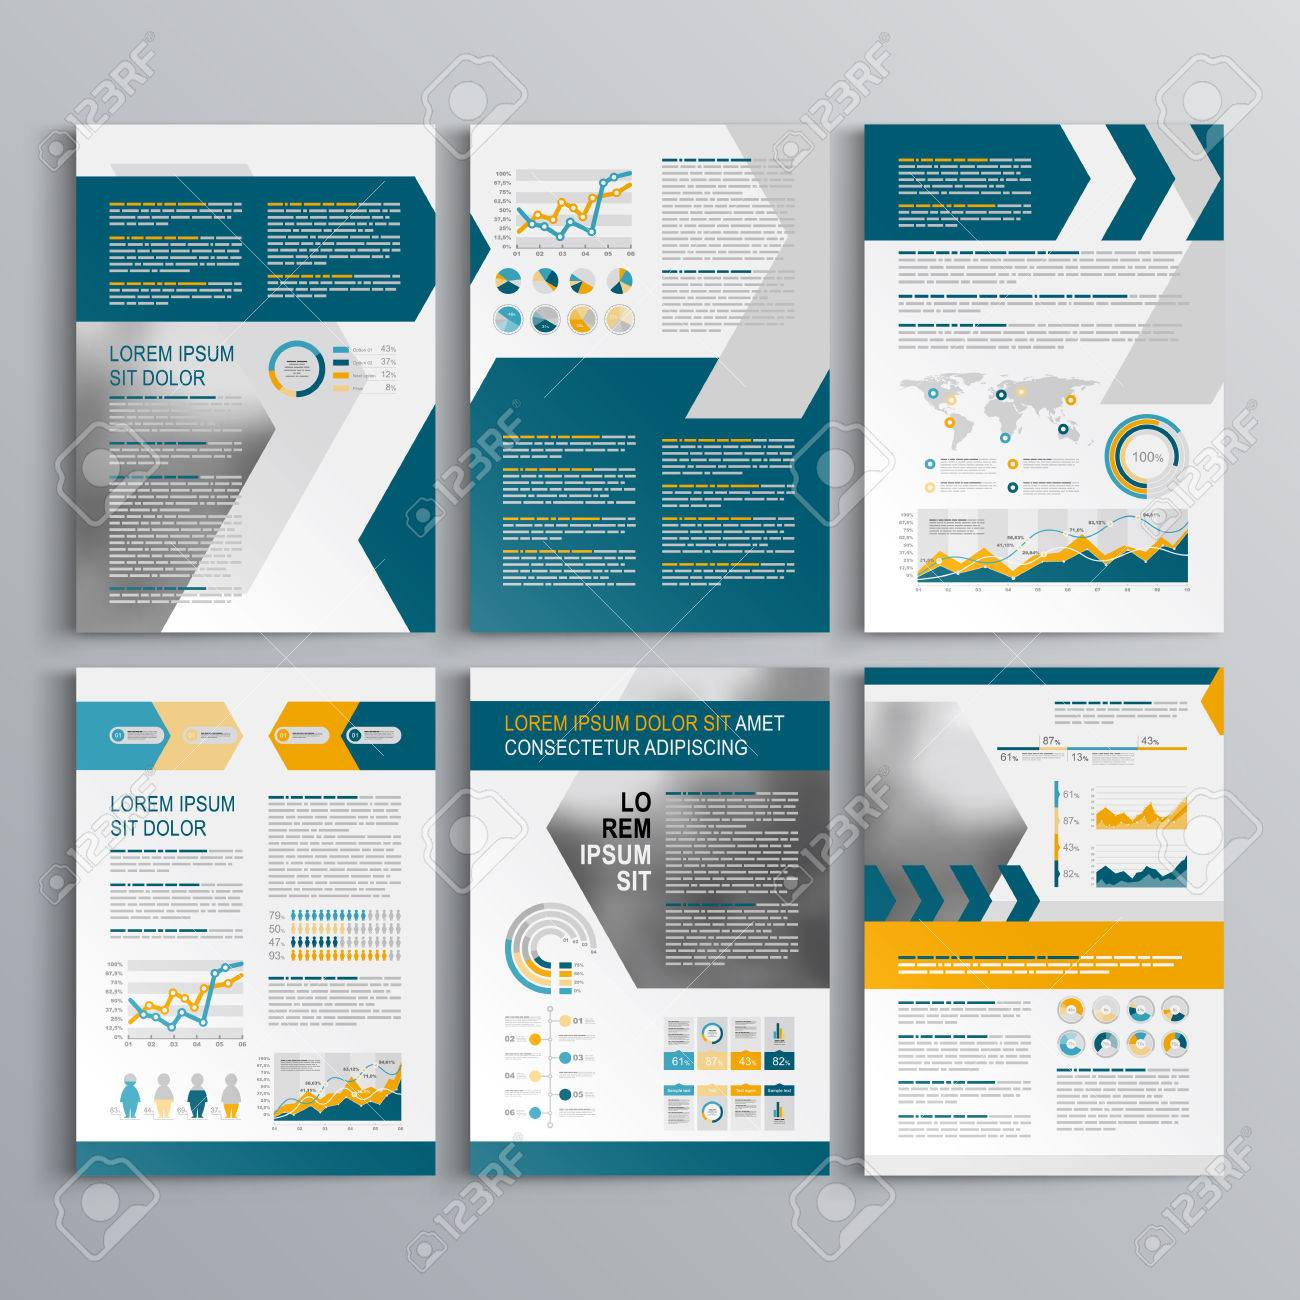 Charming 1 Page Resume Format Free Download Thin 100 Free Resume Builder And Download Flat 100 Free Resume Builder Online 1099 Contract Template Youthful 15 Year Old Resume Purple2 Circle Template Dynamic Brochure Template Design With Yellow And Blue Arrows ..